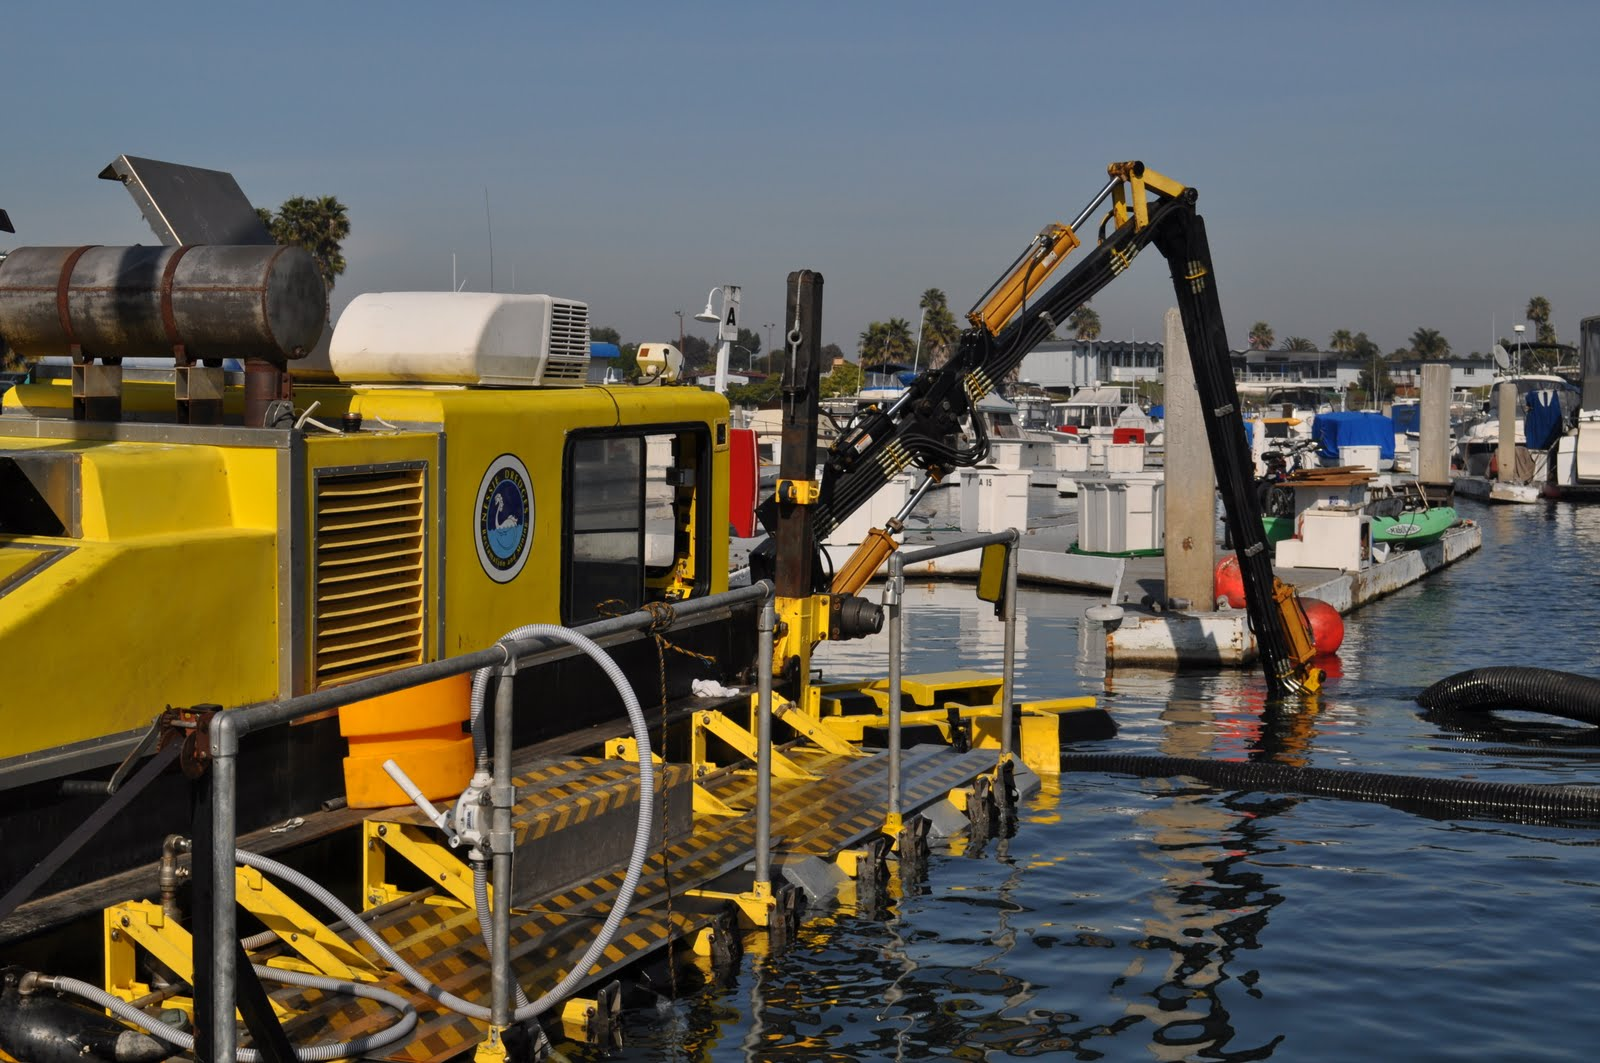 Nessie 8DX Cutter Head Dredge Available for Rent | Mark's News